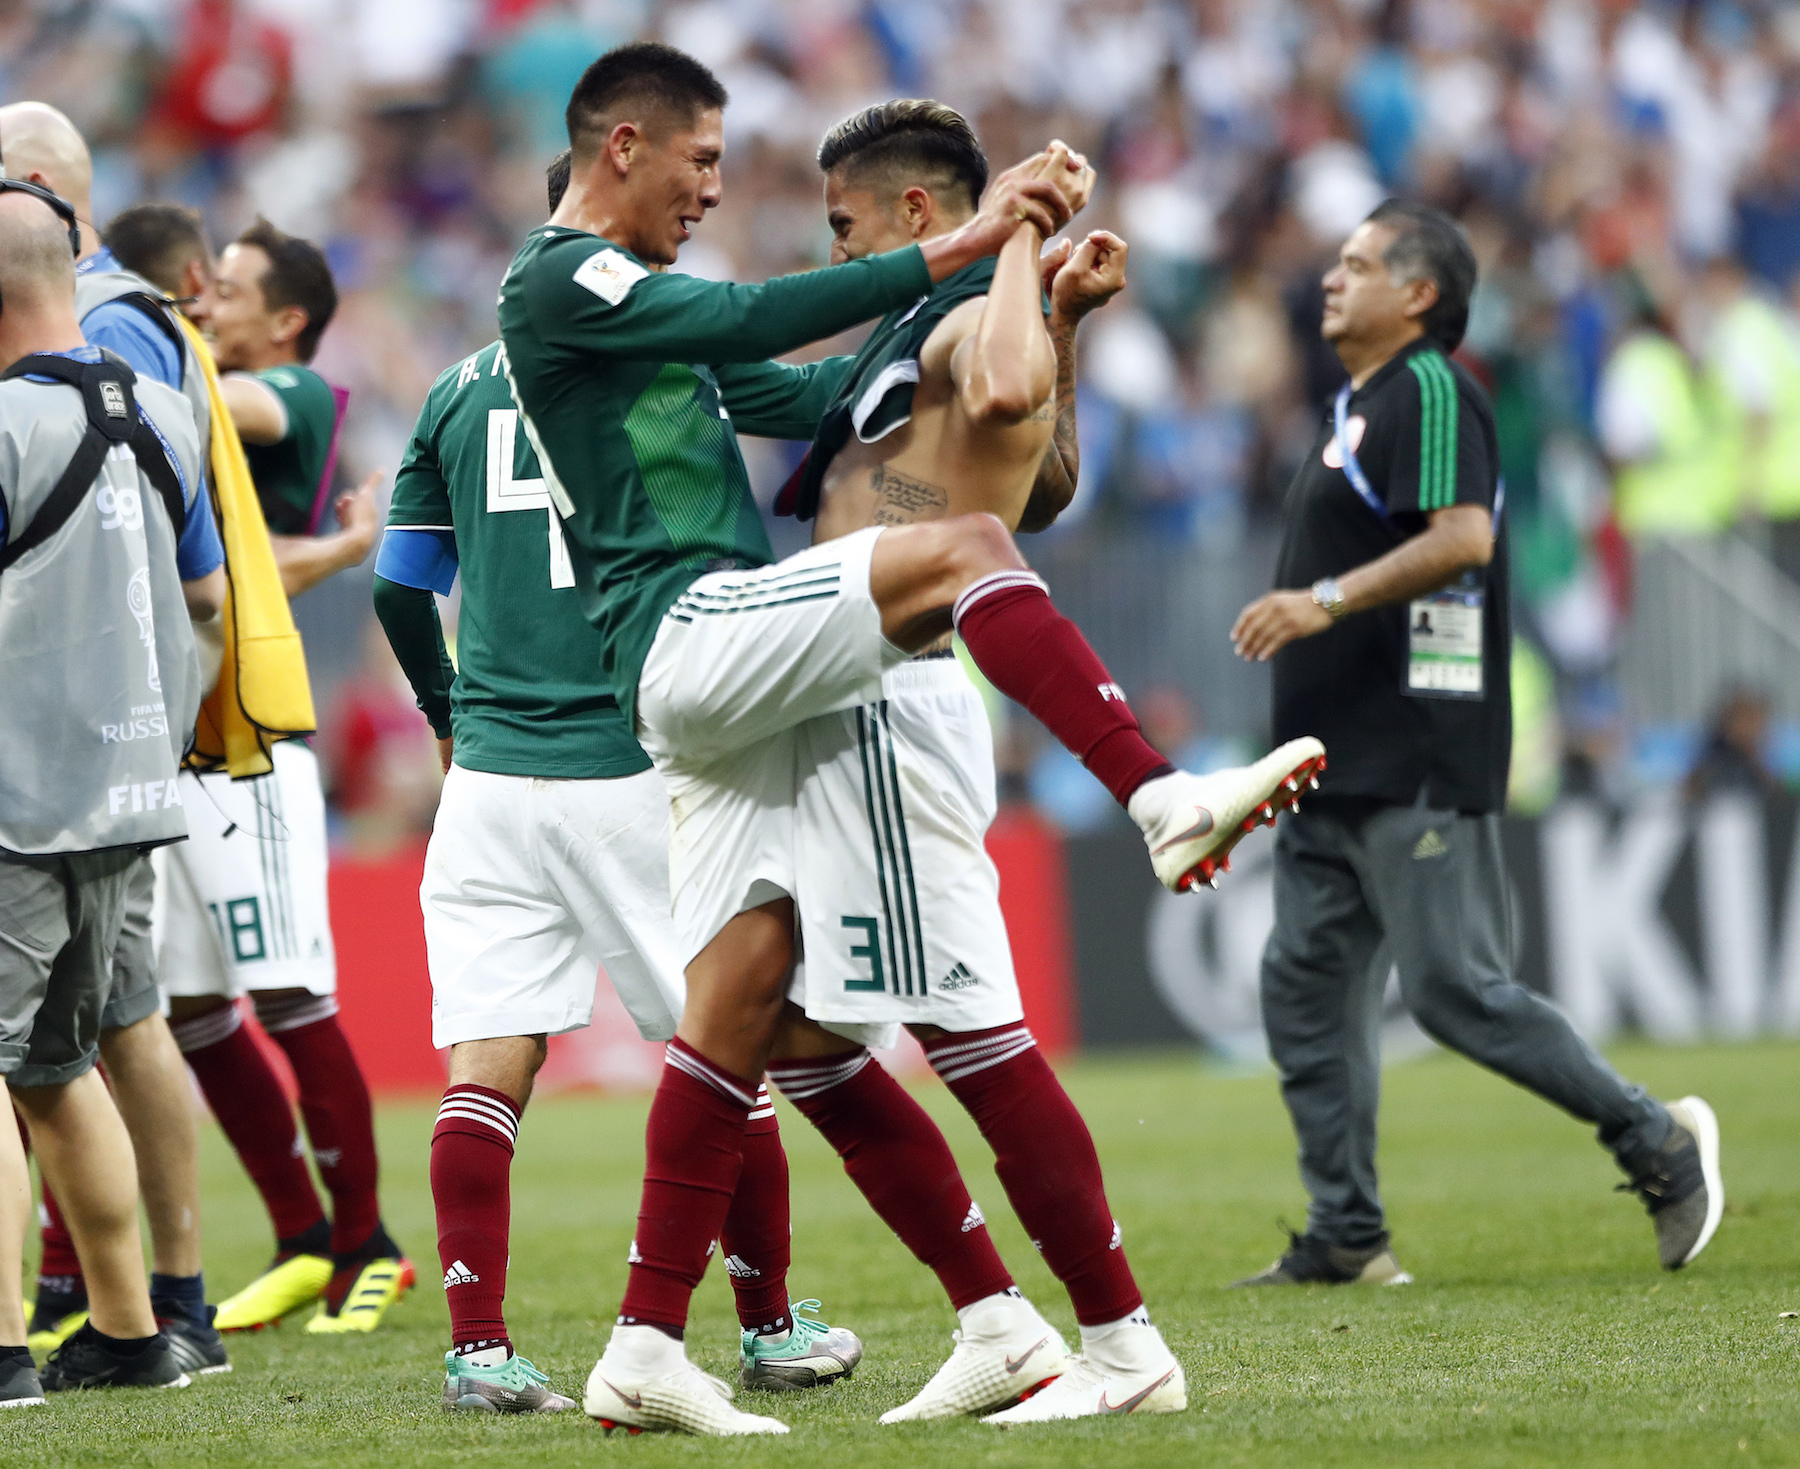 <div class='meta'><div class='origin-logo' data-origin='AP'></div><span class='caption-text' data-credit='AP Photo/Matthias Schrader'>Mexico players celebrate after winning the group F match between Germany and Mexico at the 2018 soccer World Cup in the Luzhniki Stadium in Moscow, Russia.</span></div>